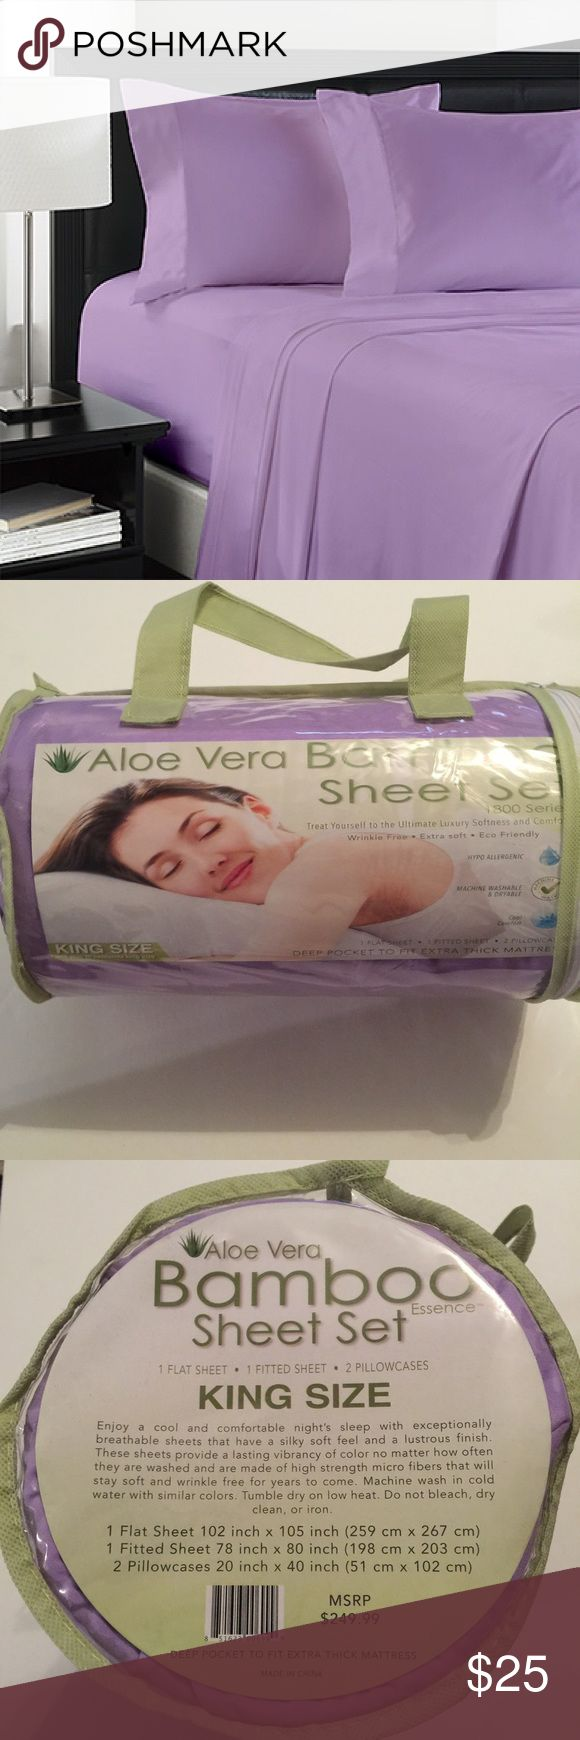 Aloe Vera bamboo sheet set king size Brand new Other